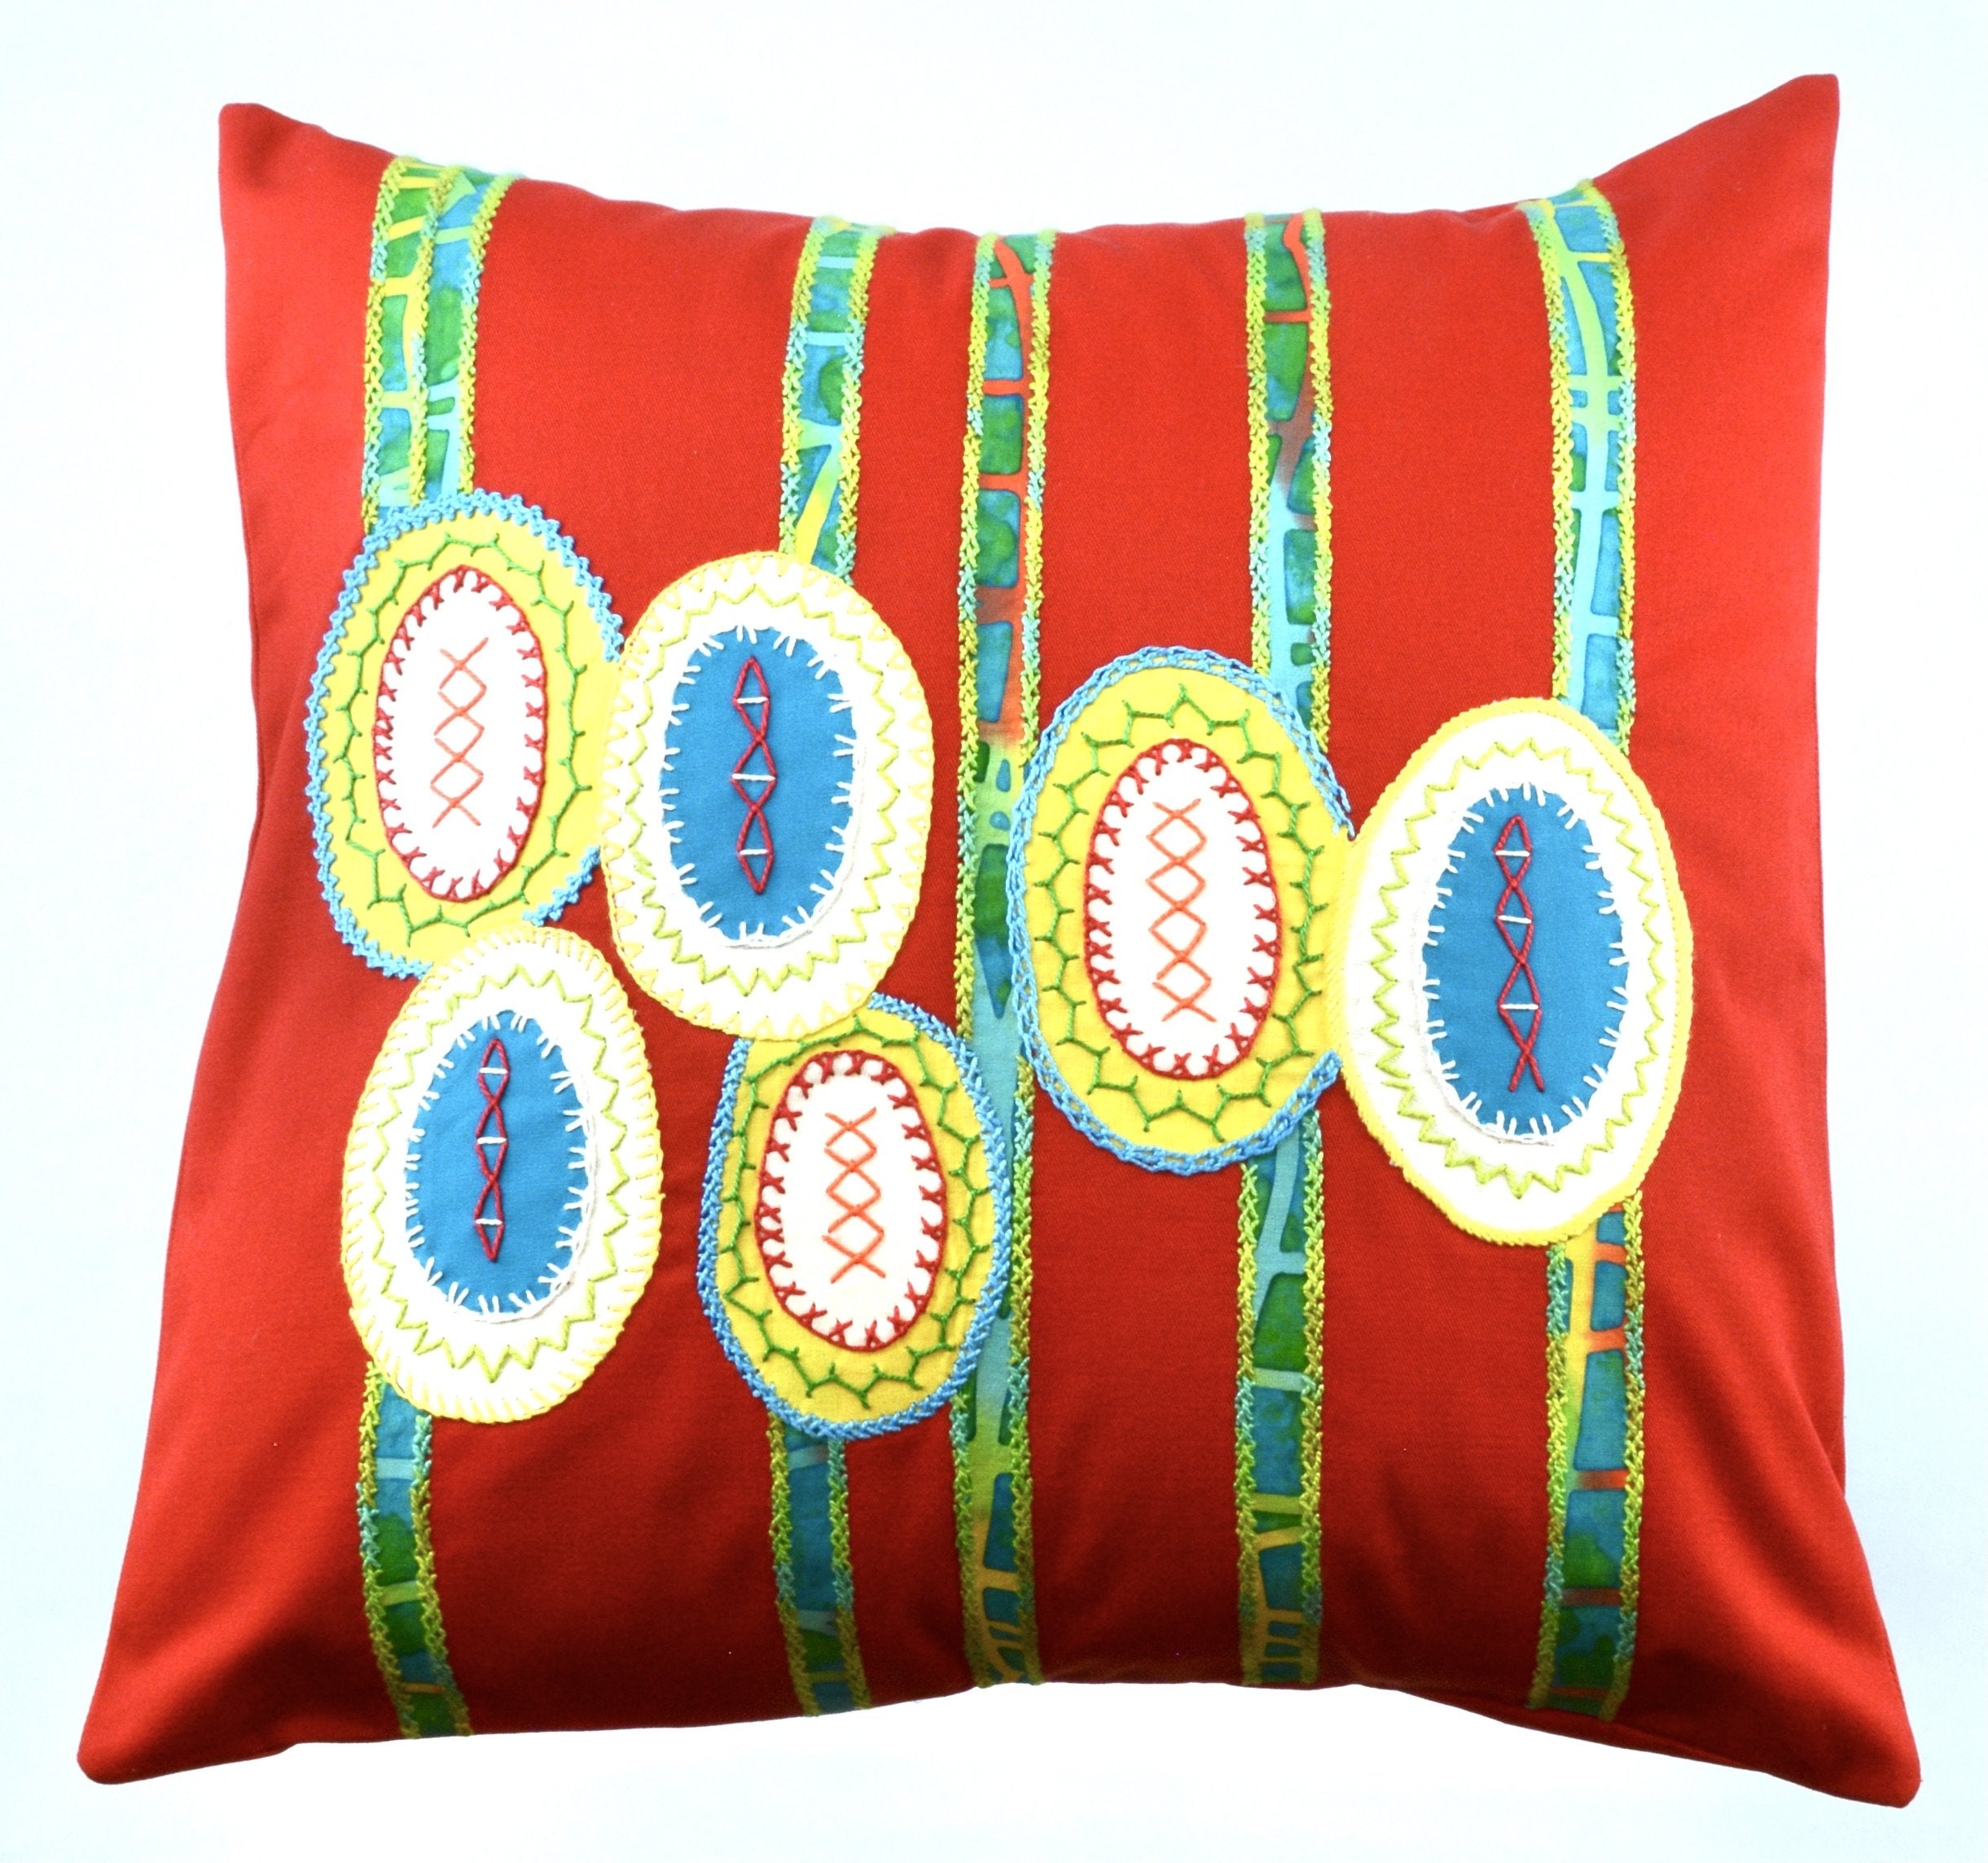 MARACAS DESIGN EMBROIDERED PILLOW ON RED